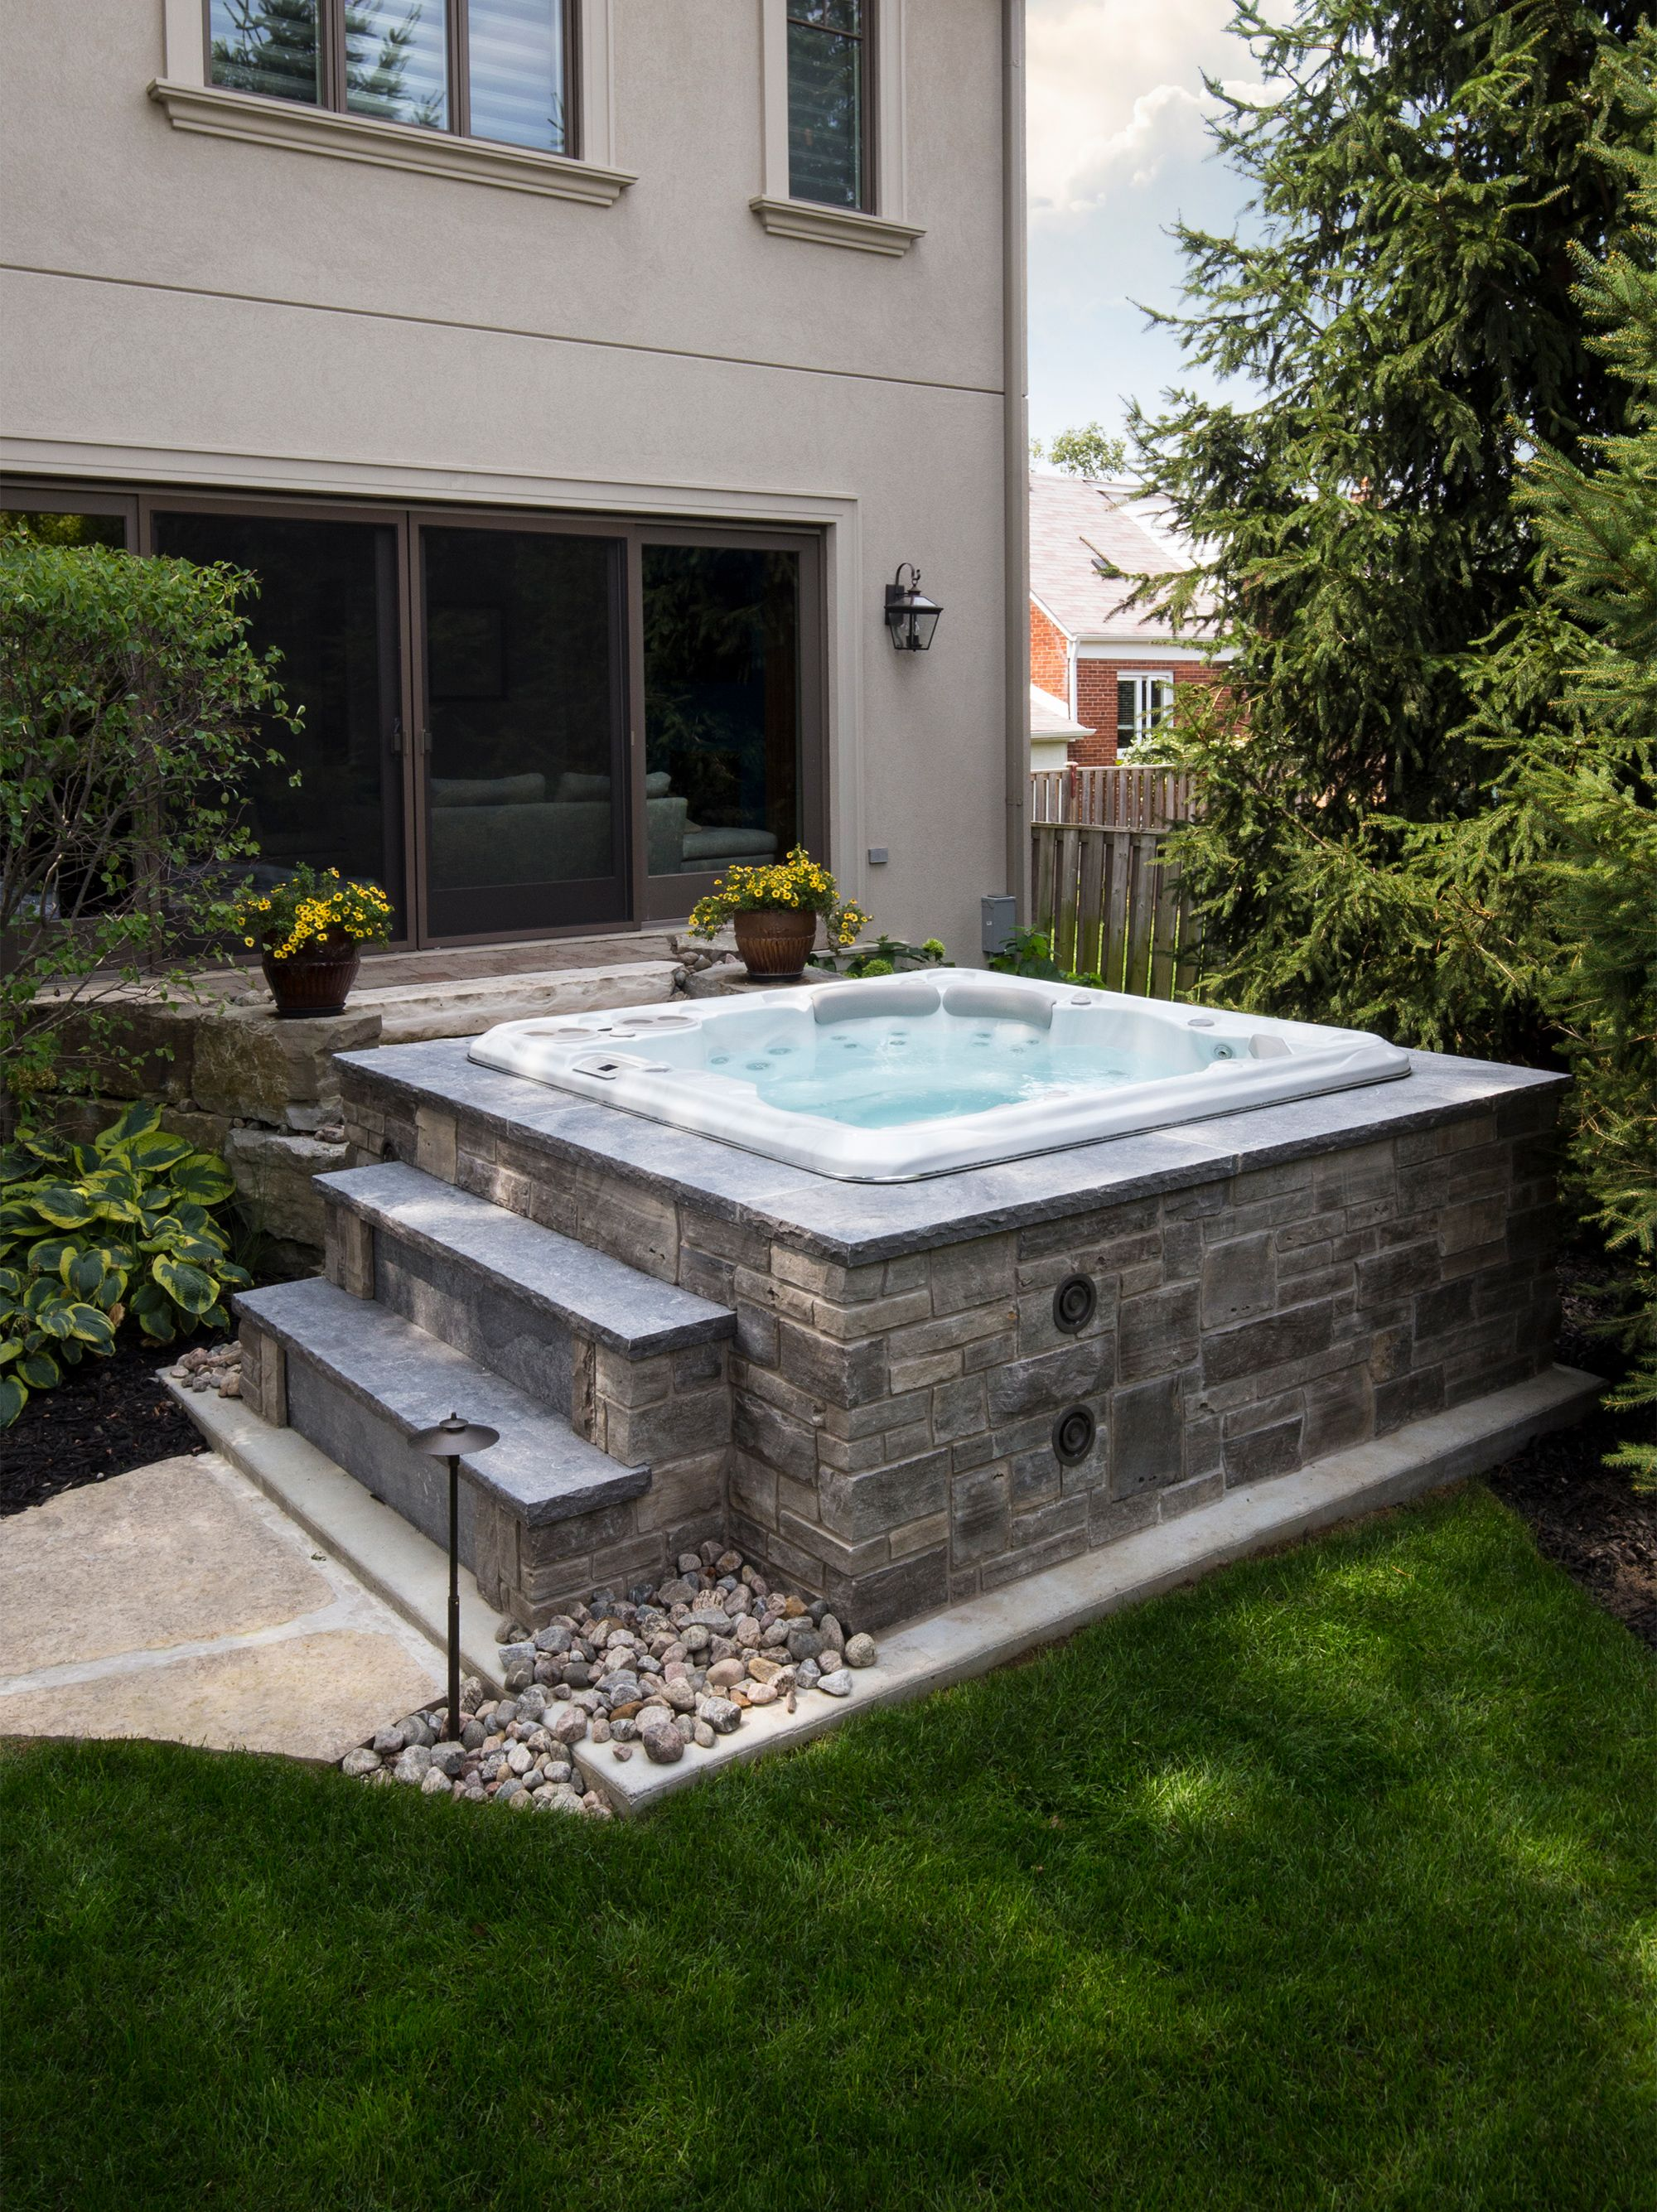 270 Hot Tub Ideas In 2021 Hot Tub Hot Tub Backyard Hot Tub Outdoor